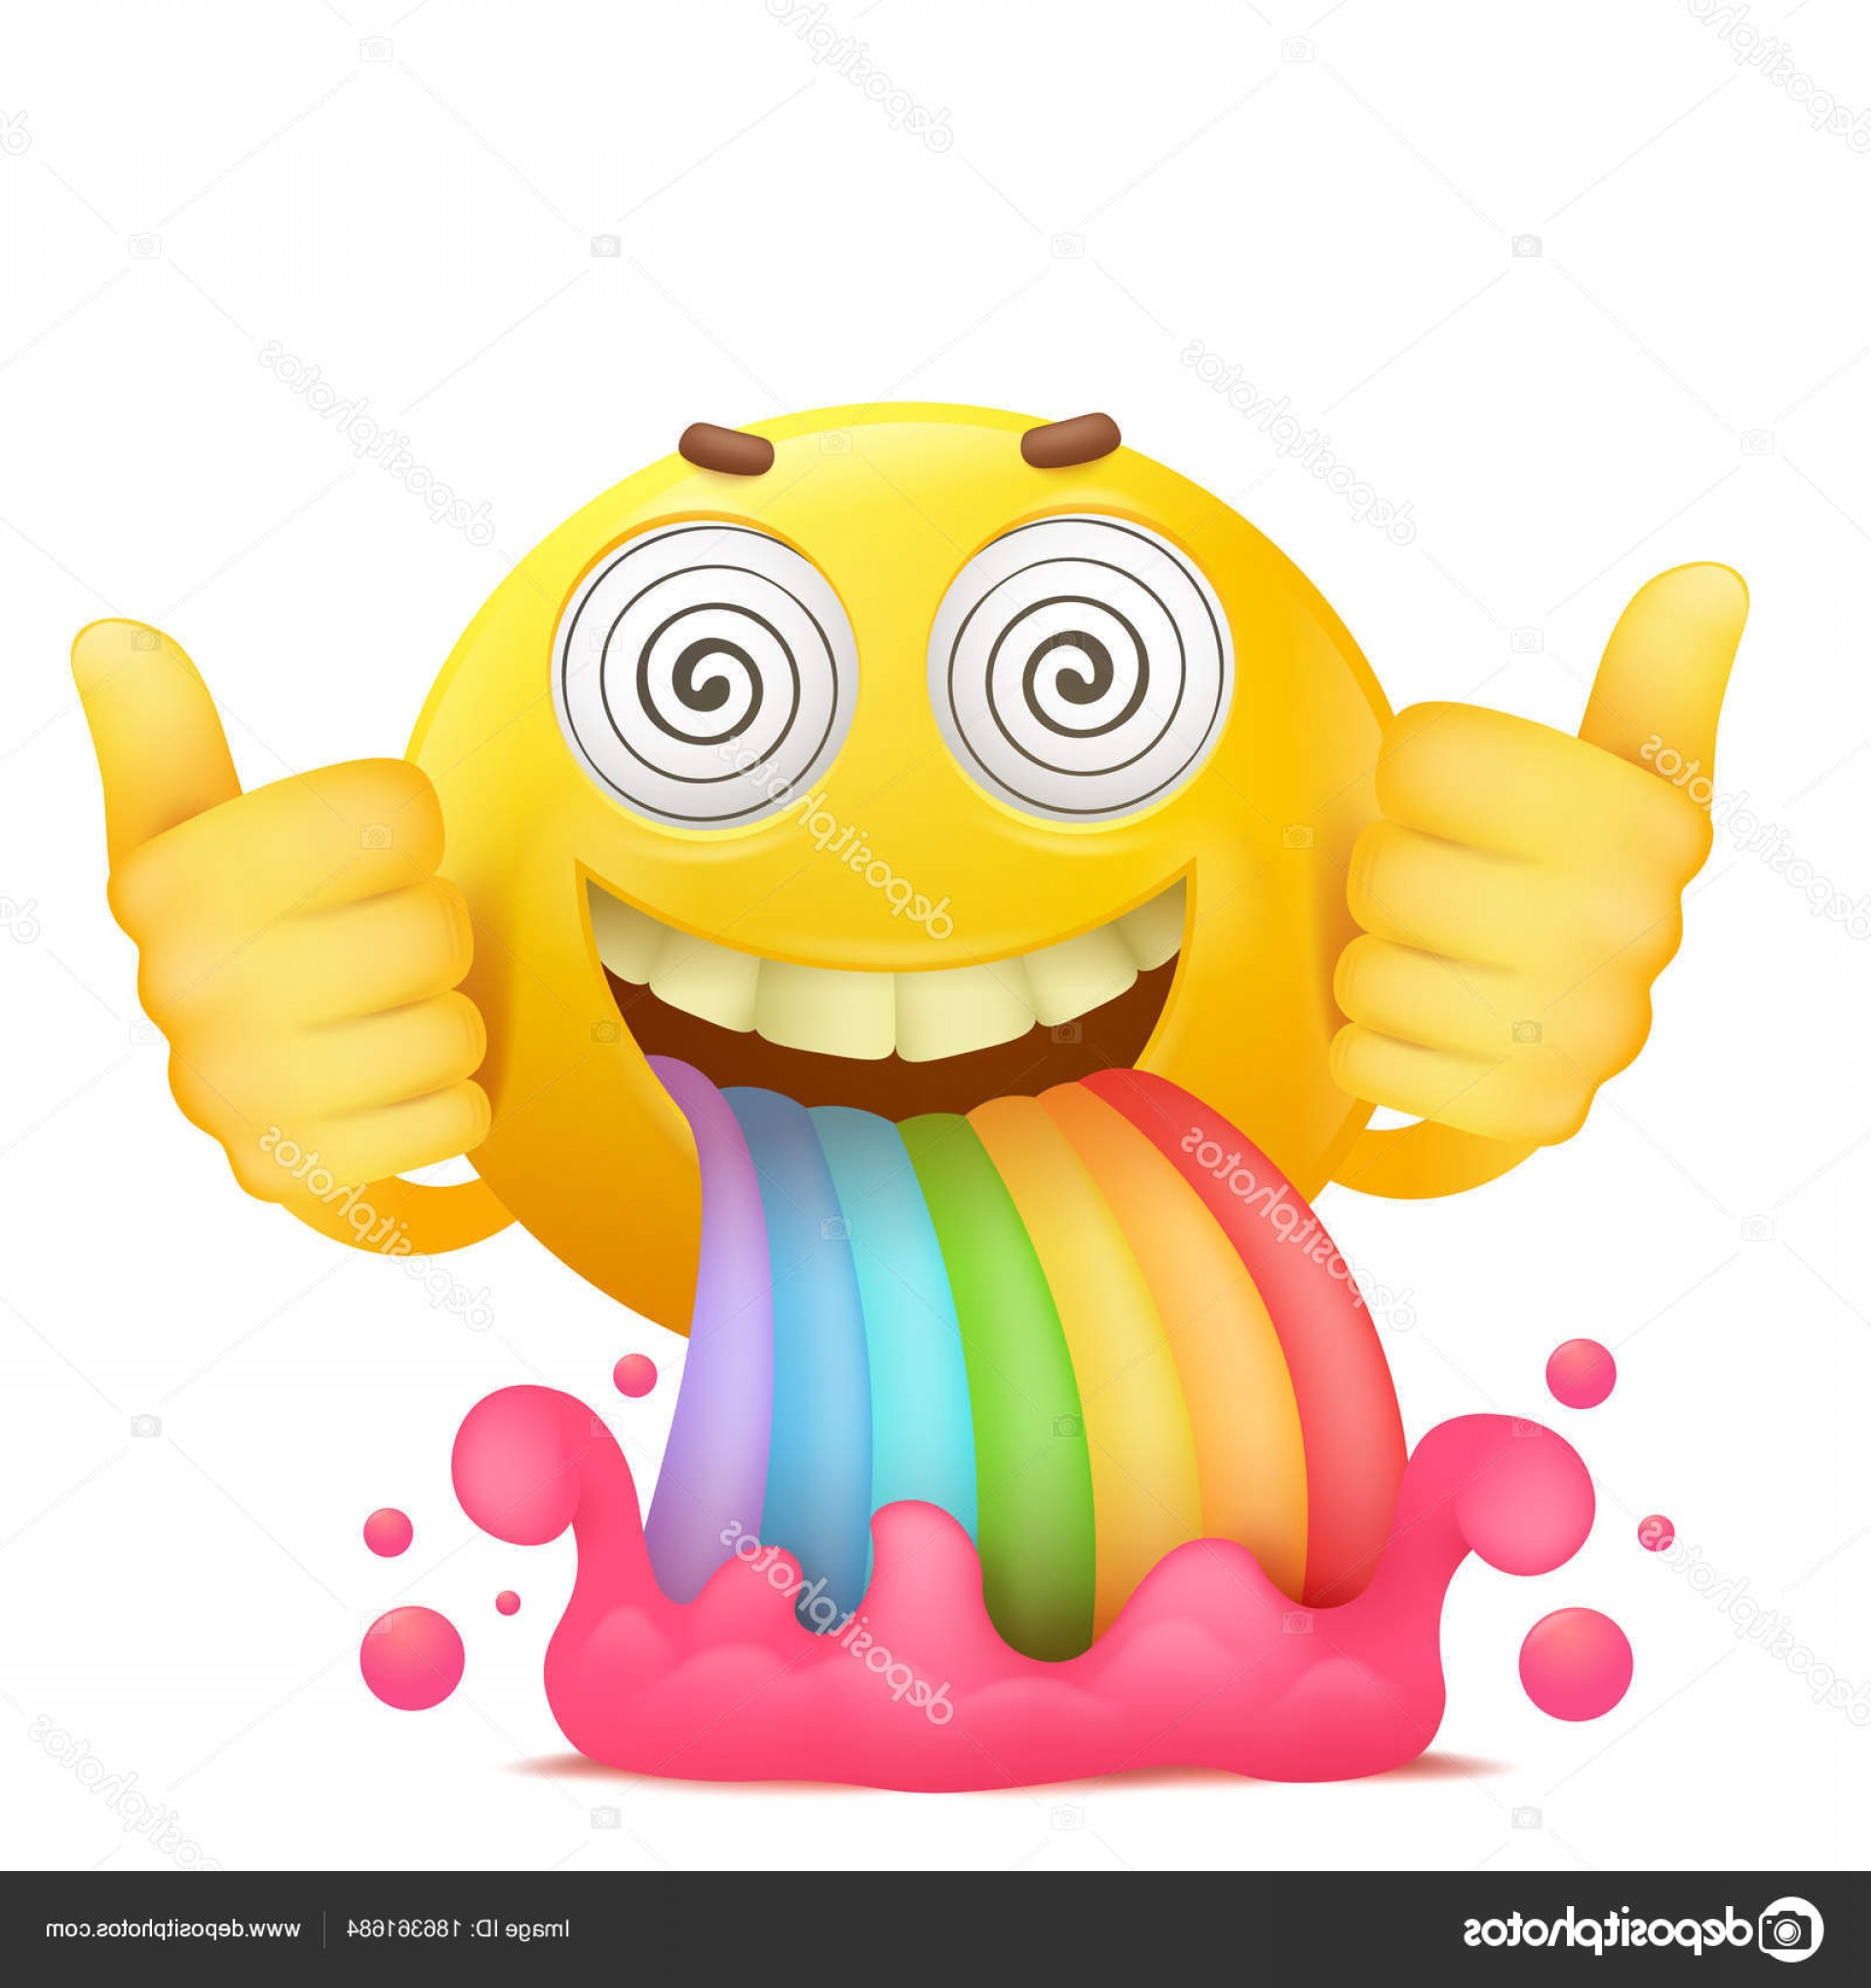 Rainbow Face Emoji Vector: Stock Illustration Cartoon Yellow Smiley Face Emoji